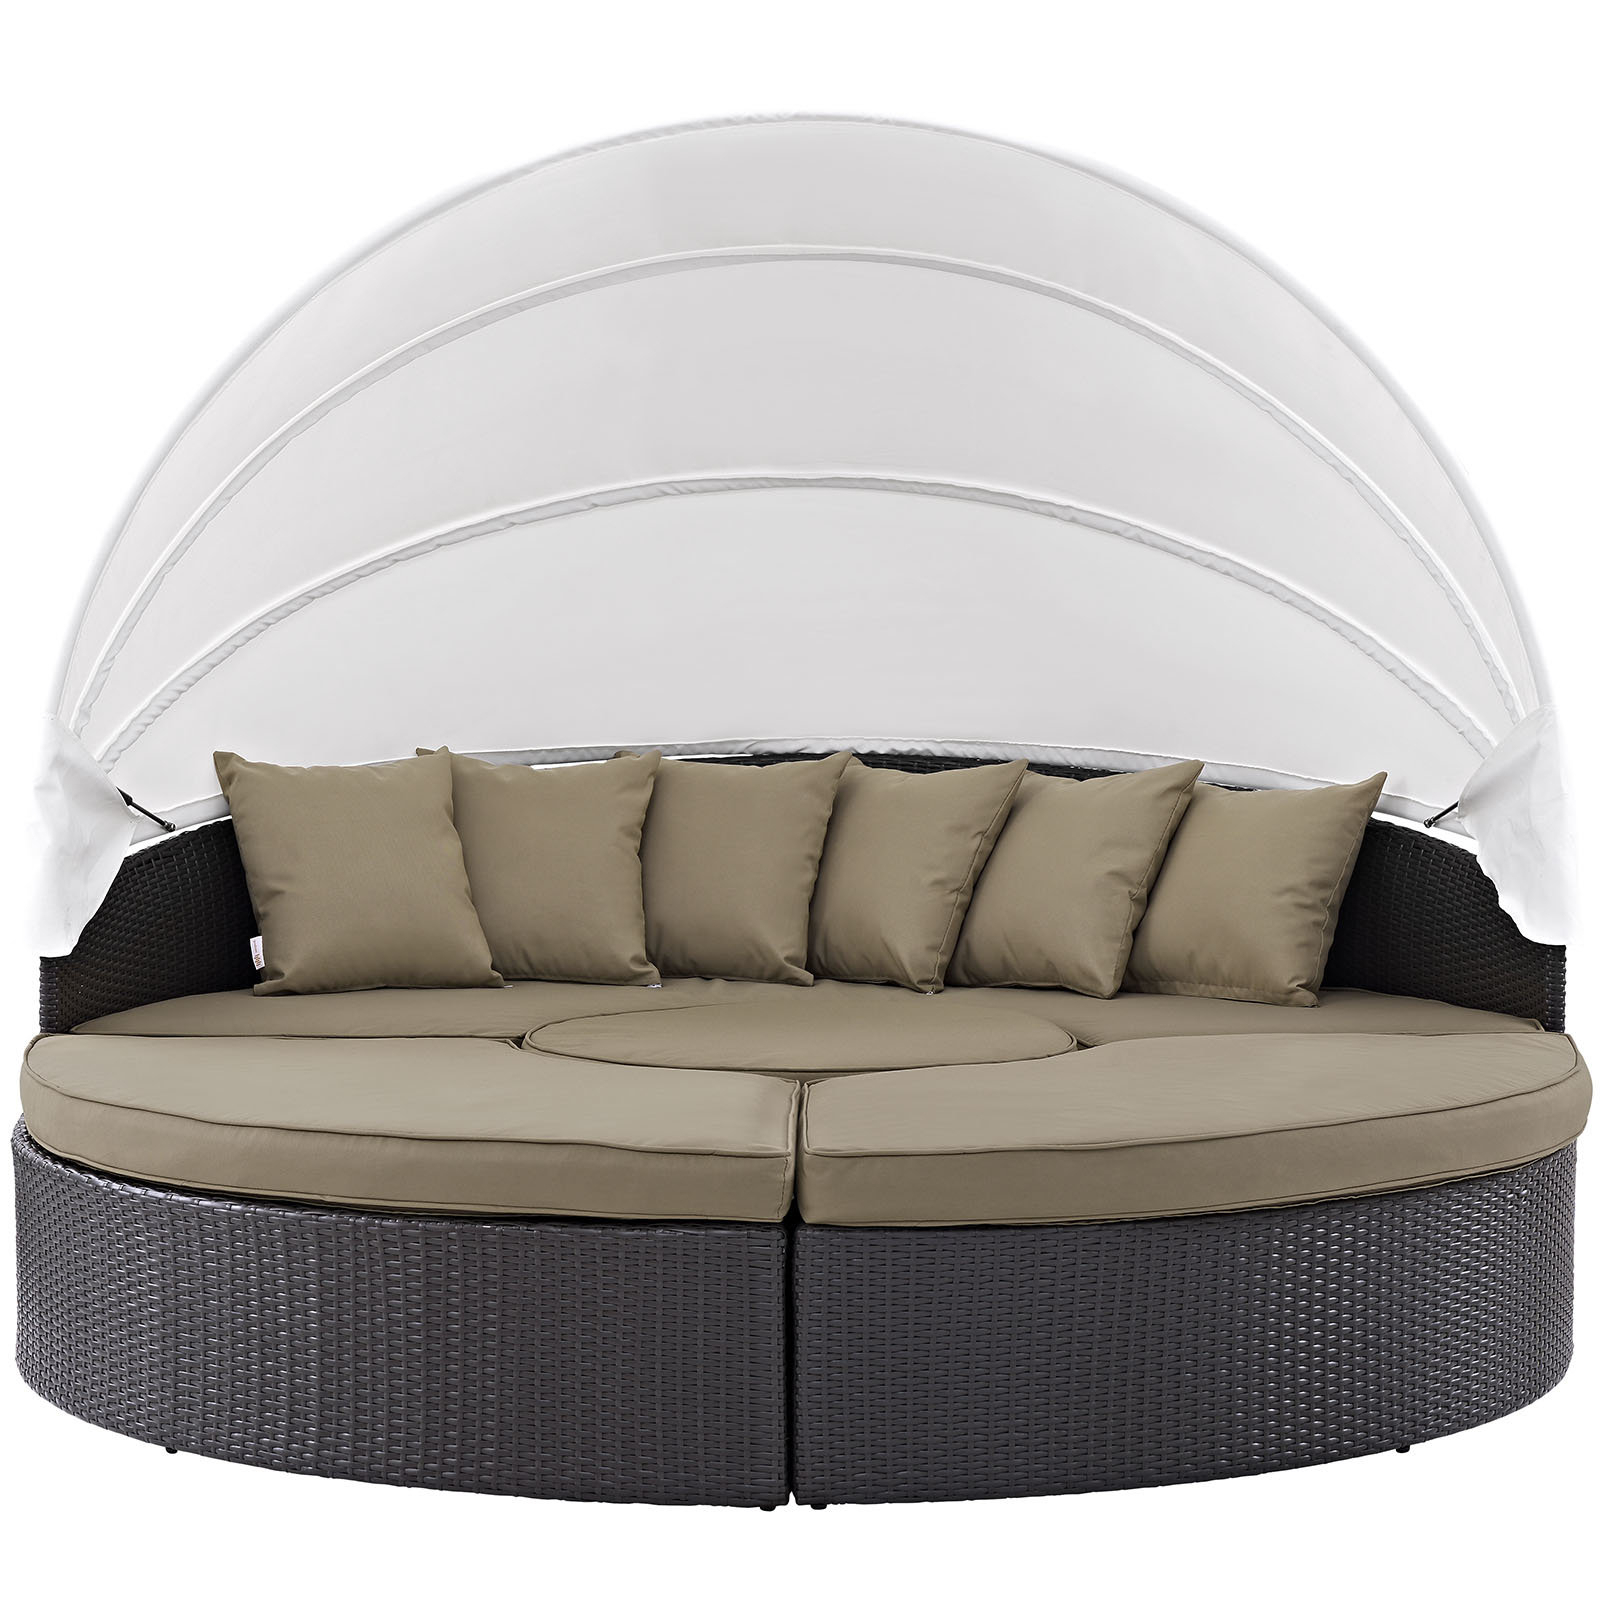 Brentwood Patio Daybed With Cushions In Well Known Freeport Patio Daybeds With Cushion (Gallery 5 of 20)